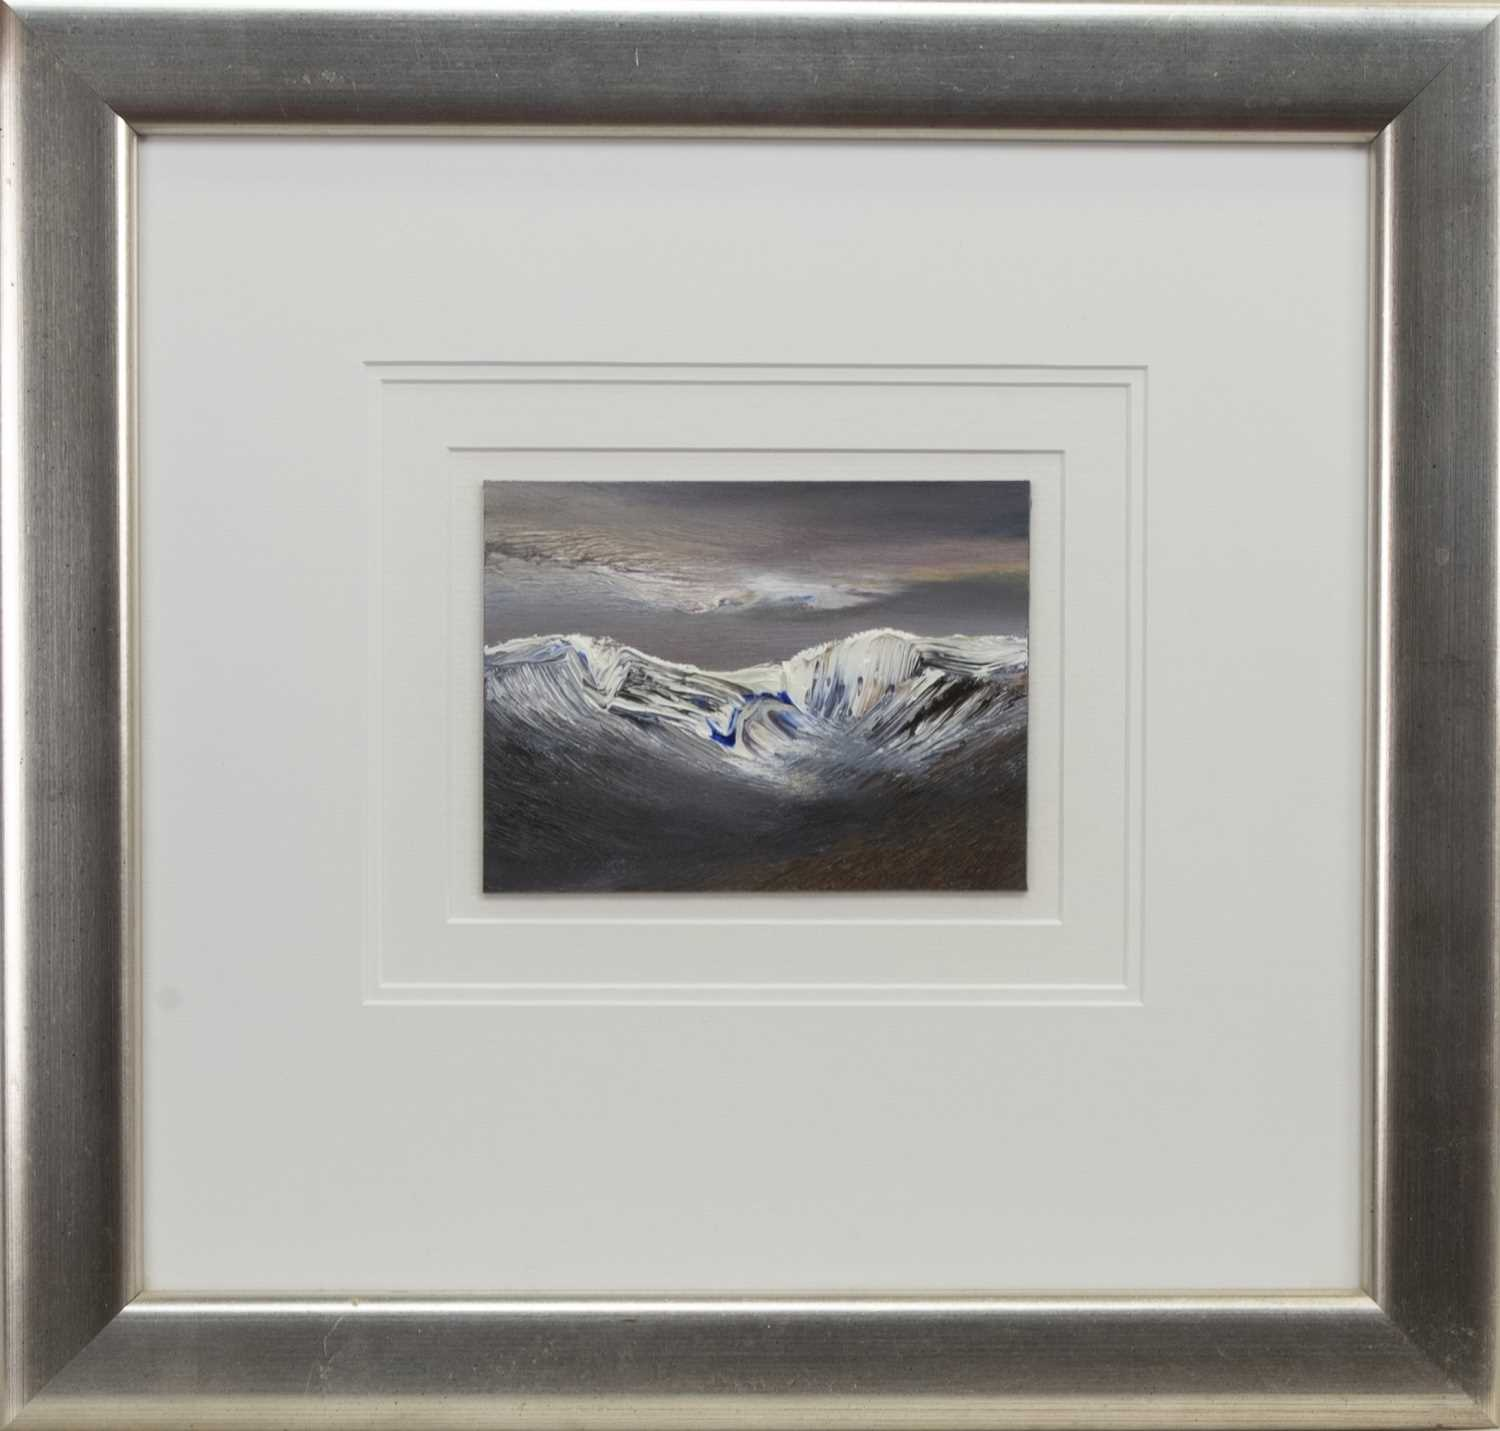 Lot 567 - LATE SNOW, LAGGAN. AN OIL BY PETER GOODFELLOW